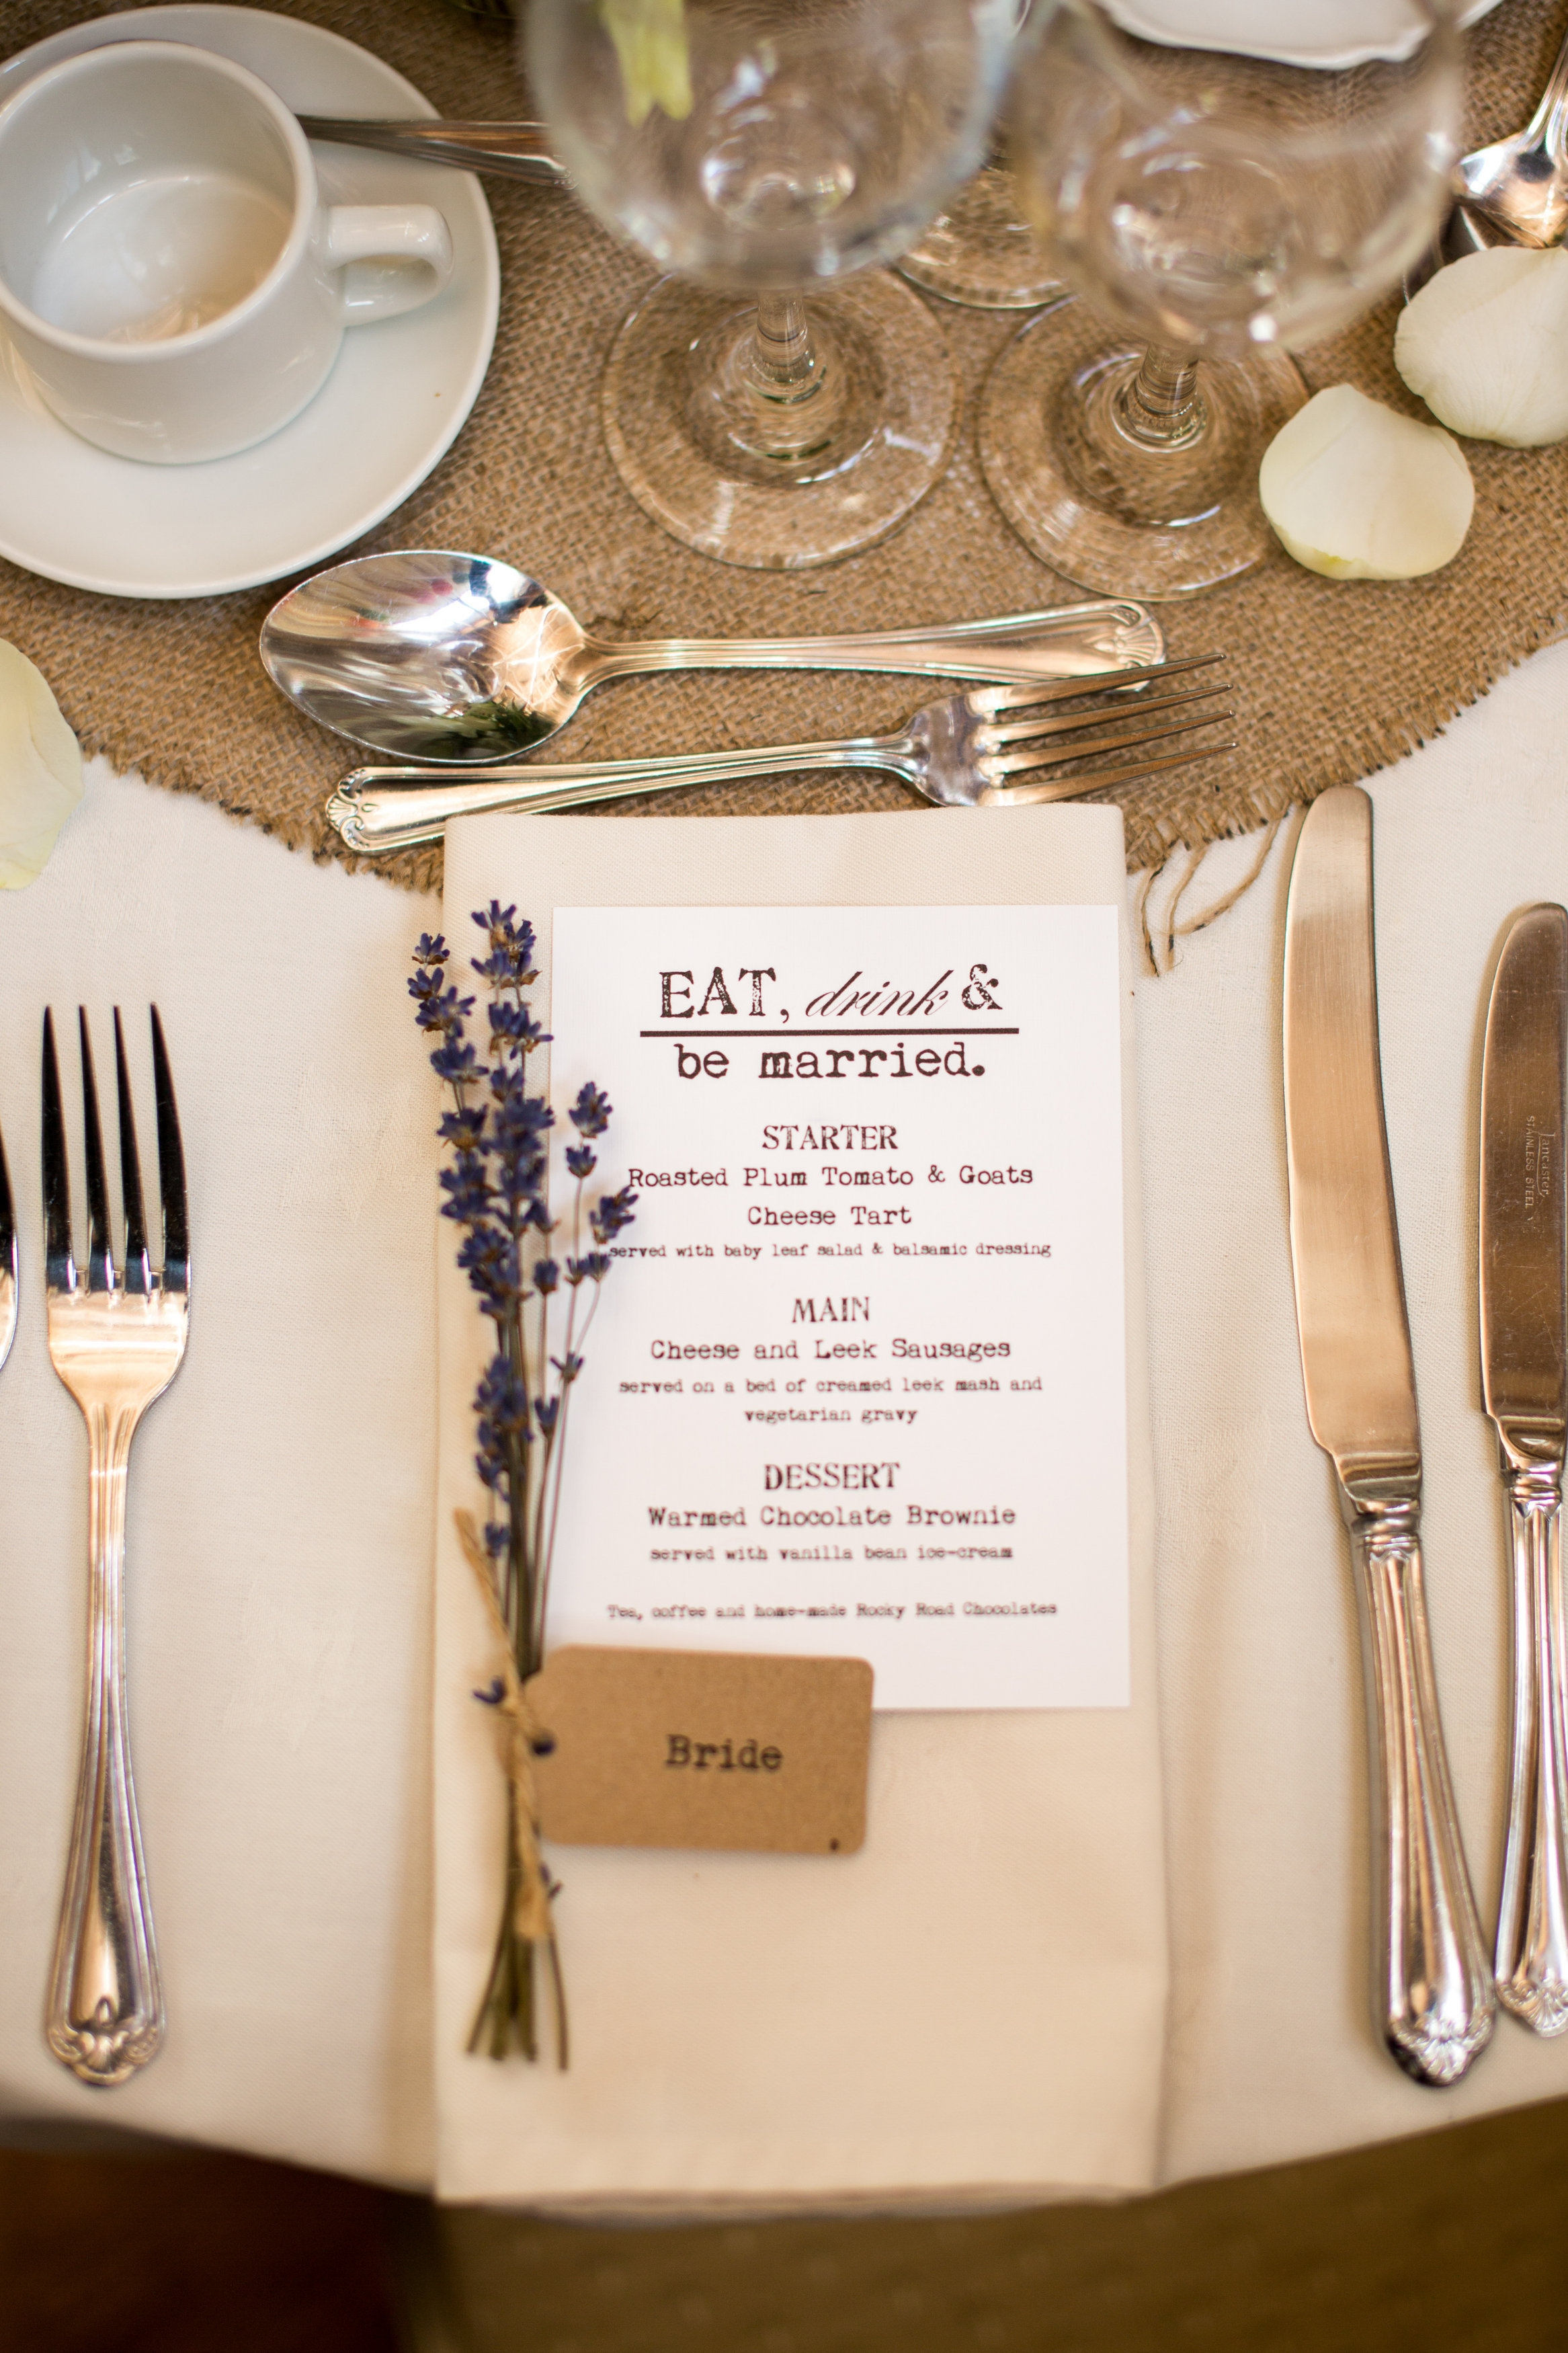 Wedding Breakfast Menu Idea